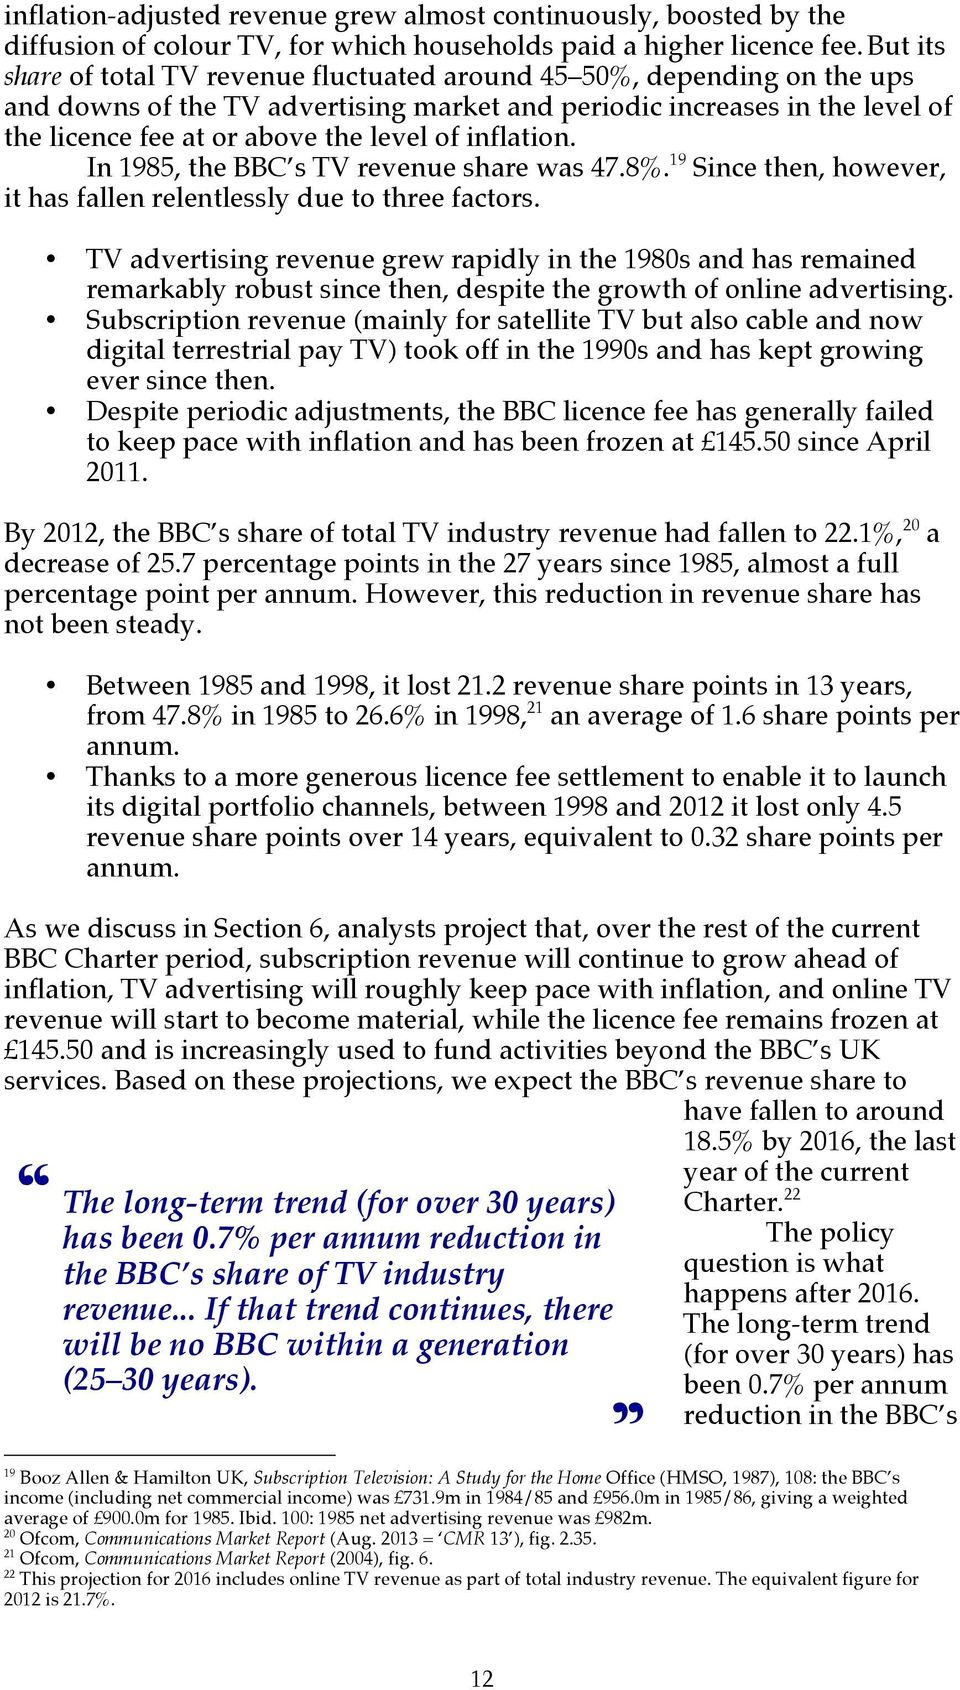 inflation. In 1985, the BBC s TV revenue share was 47.8%. 19 Since then, however, it has fallen relentlessly due to three factors.